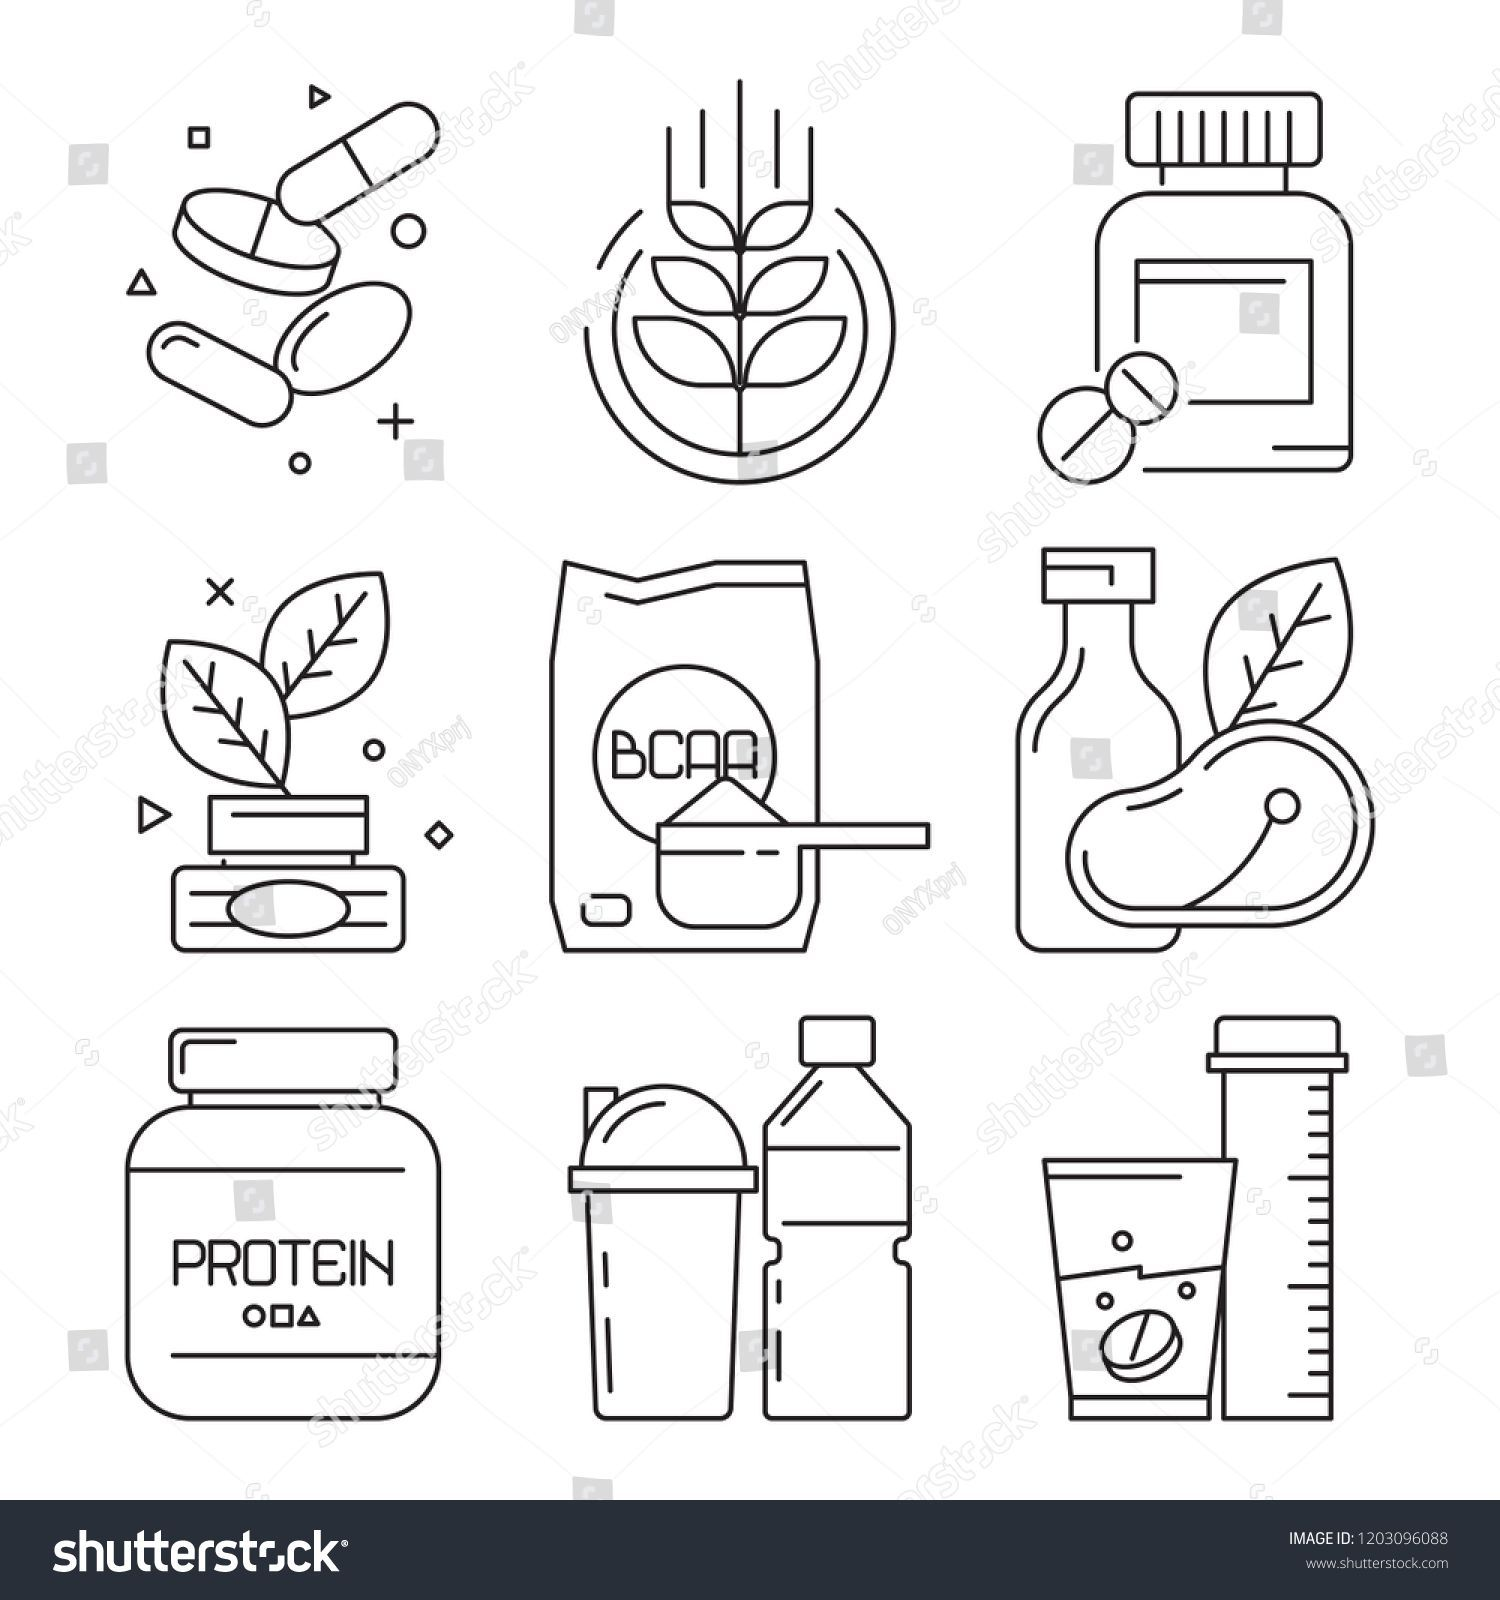 #BCAA #Container #dietary #drinks #Fitness #FitnessFoodillustration #Food #Icons #illustration #line...